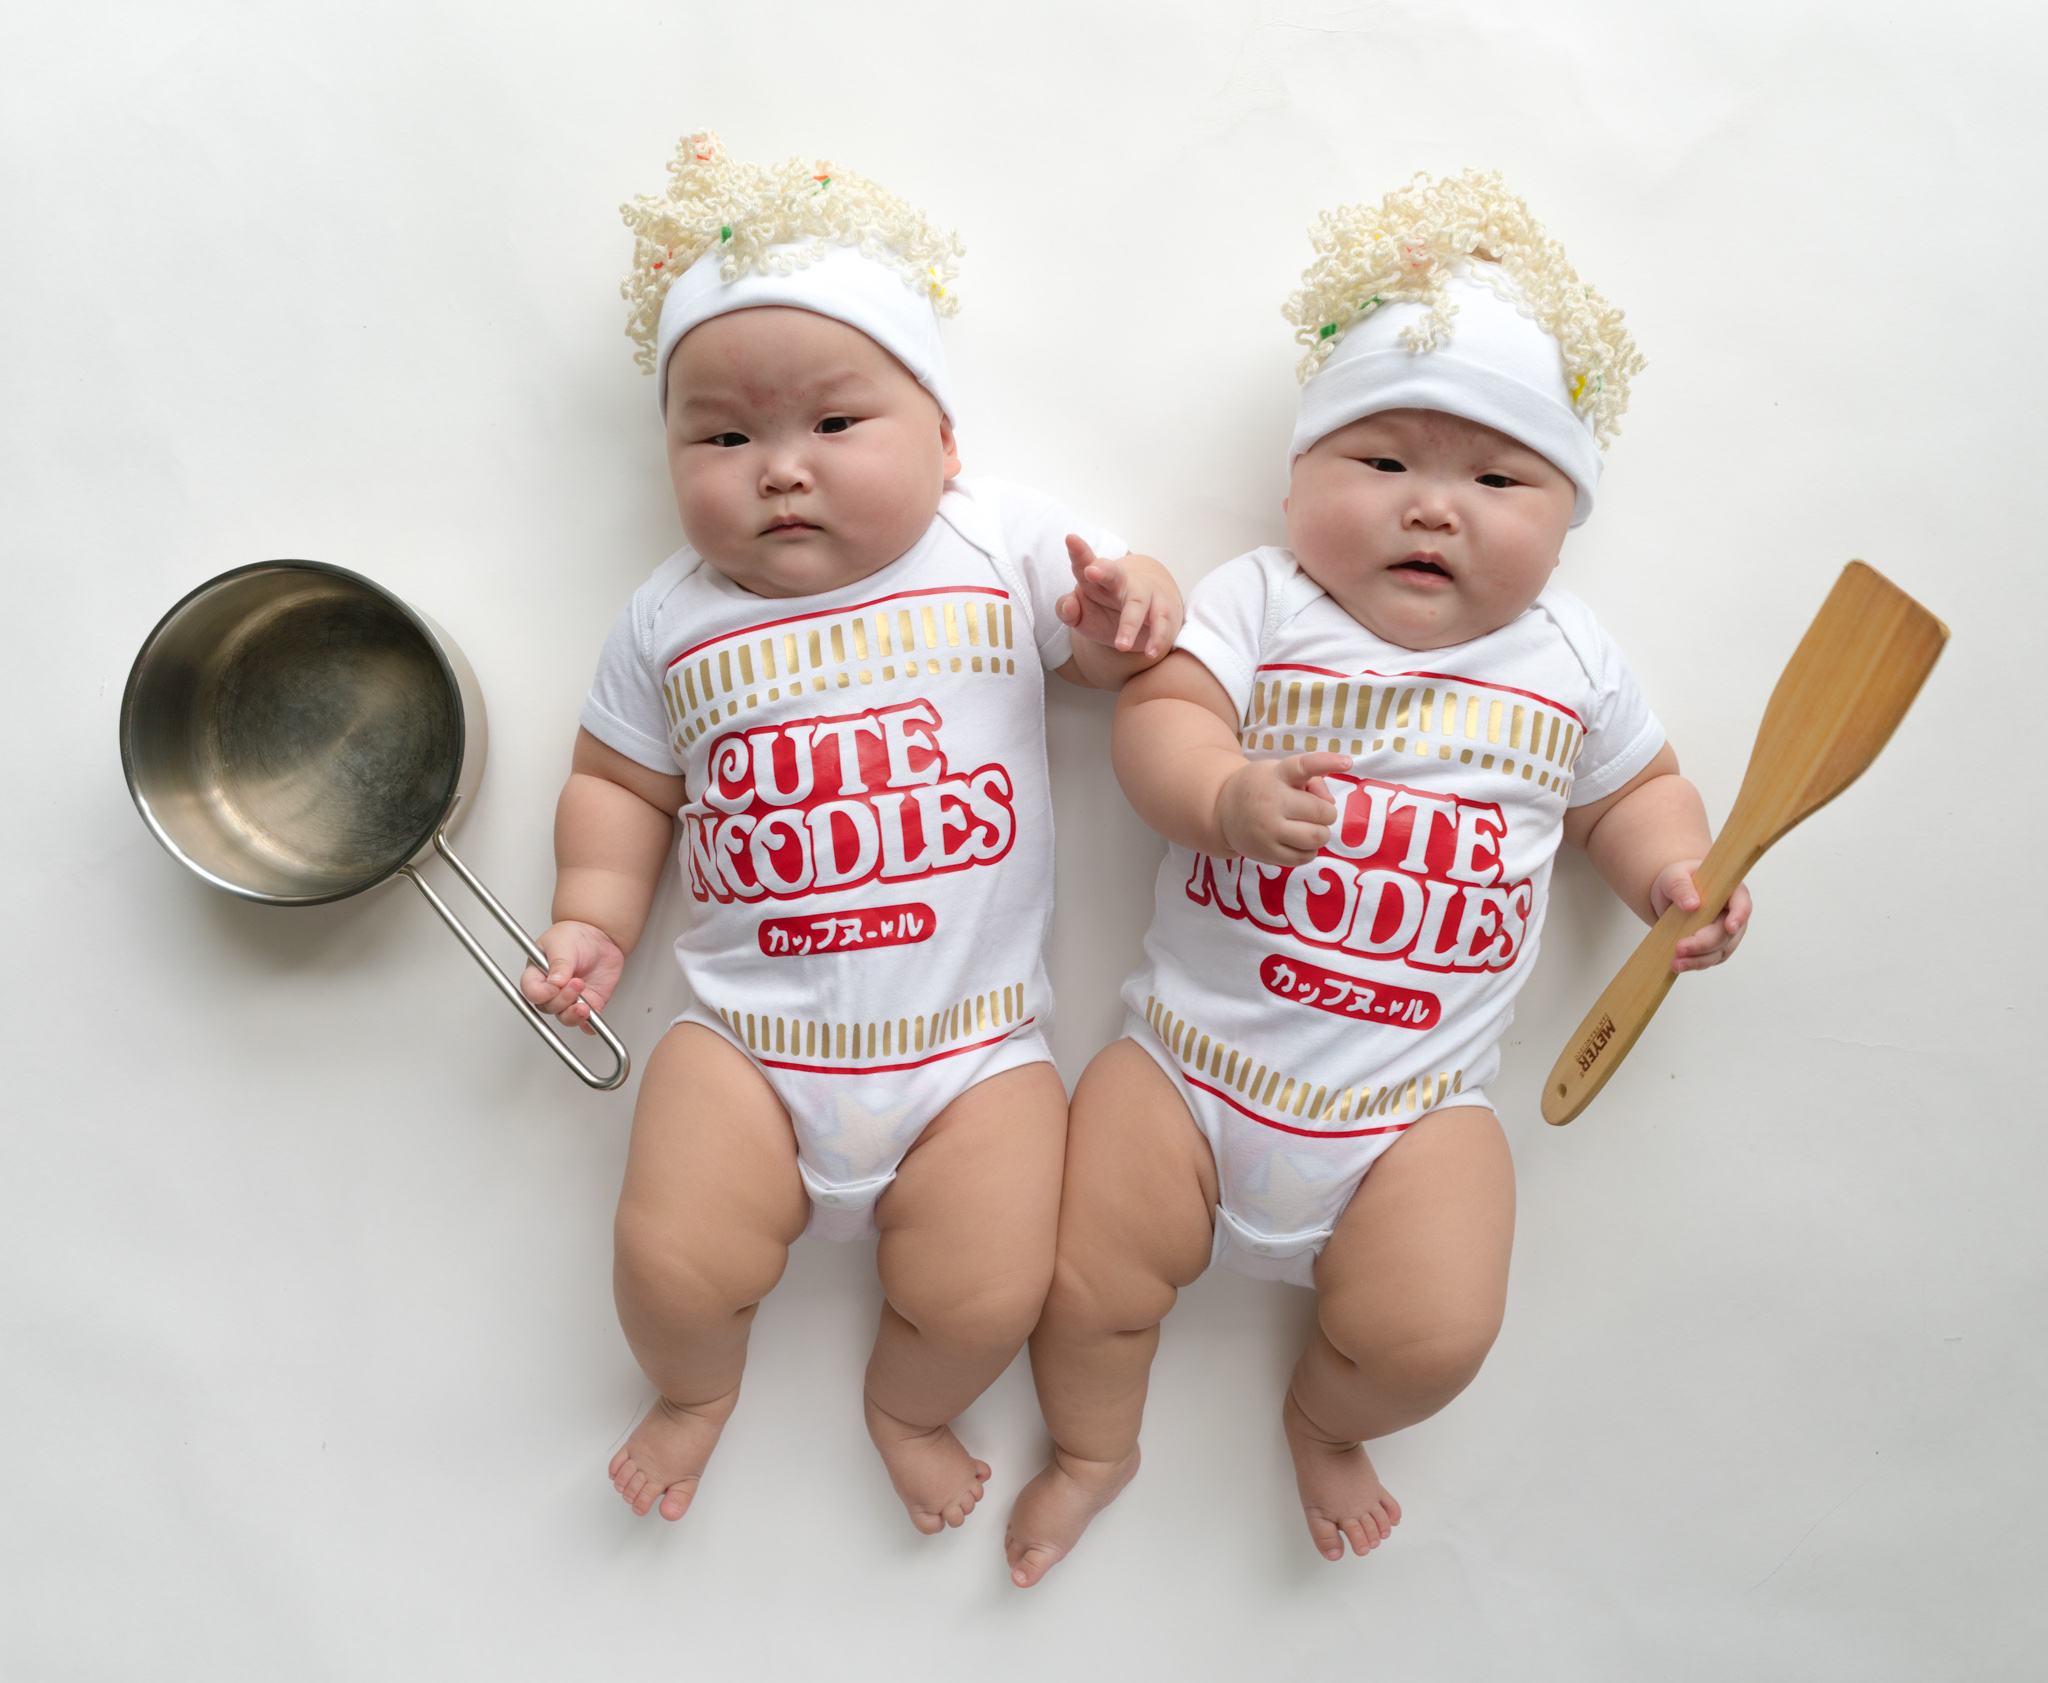 The adorable outfits include mermaid costumes, cup-of-noodles costumes and cute onesies with funny slogans.